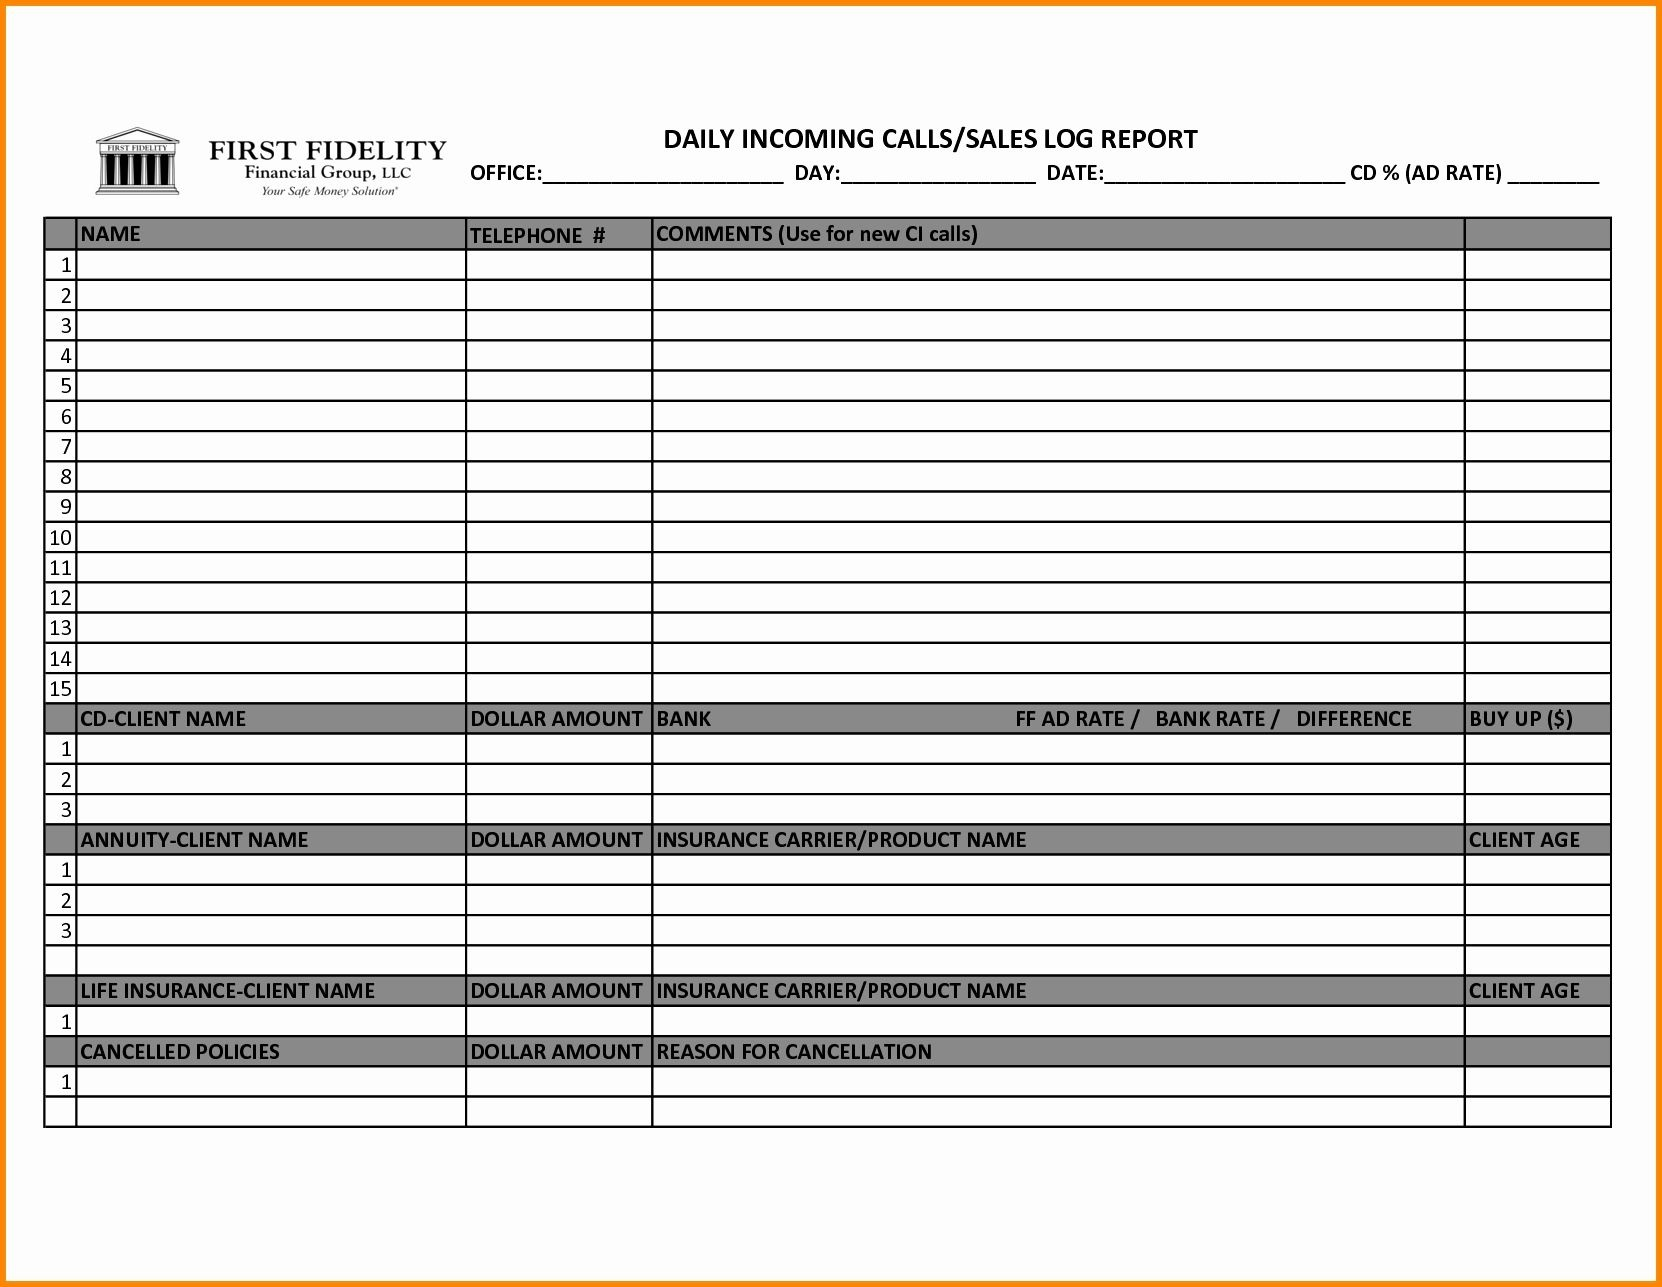 004 Shocking Sale Call Report Template Picture  Excel FreeFull